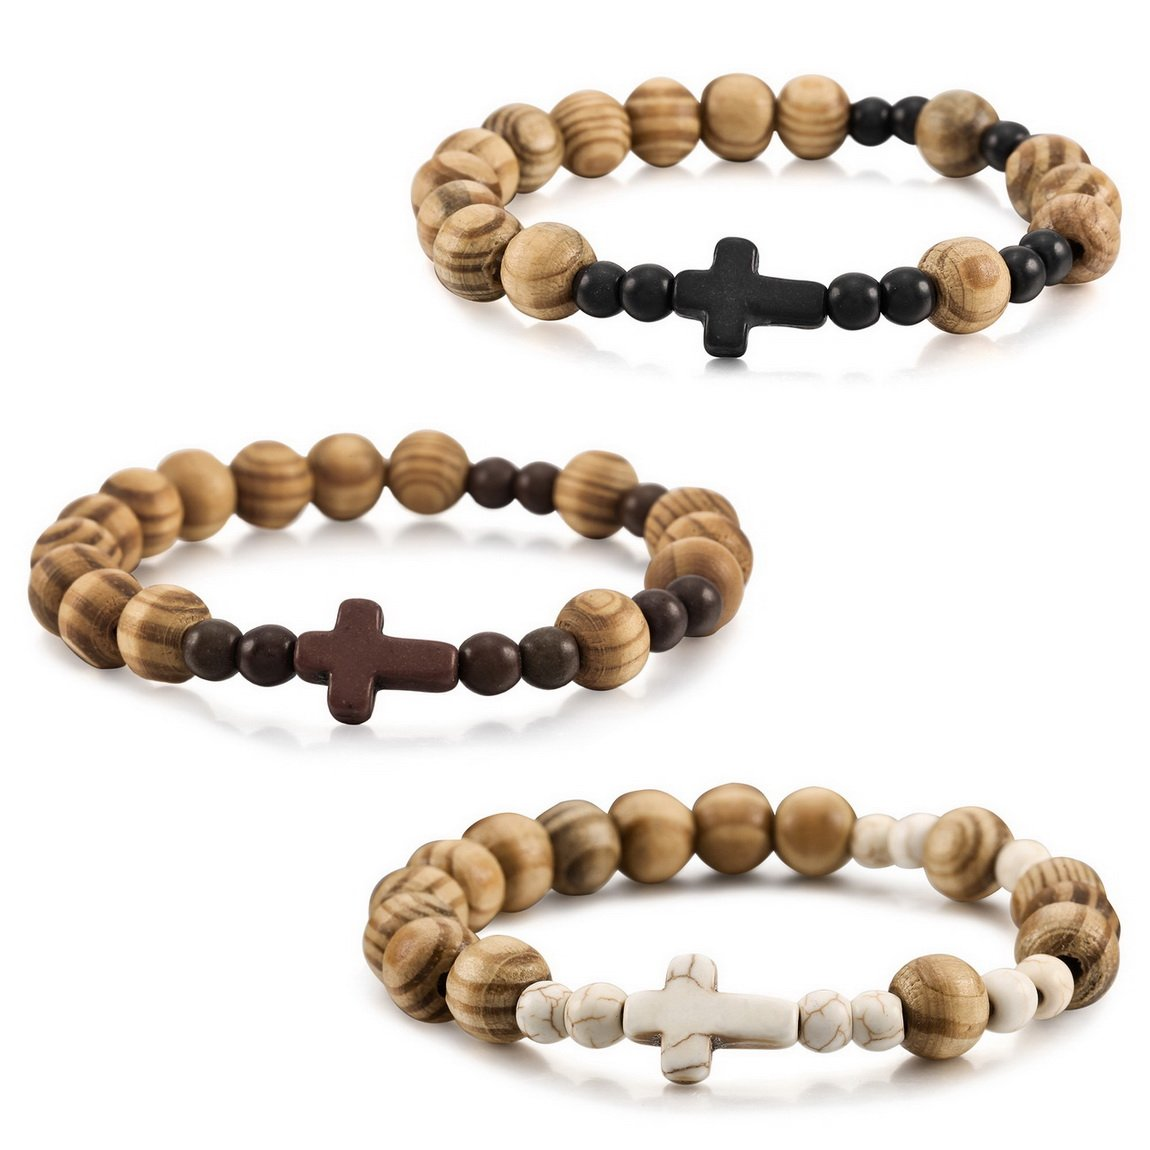 INBLUE Men, Women's 3 PCS 10mm Wood Bracelet Link Wrist Tibetan Buddhist Bead Prayer Buddha Mala Cross Elastic Set INBLUE Jewelry mnb1932